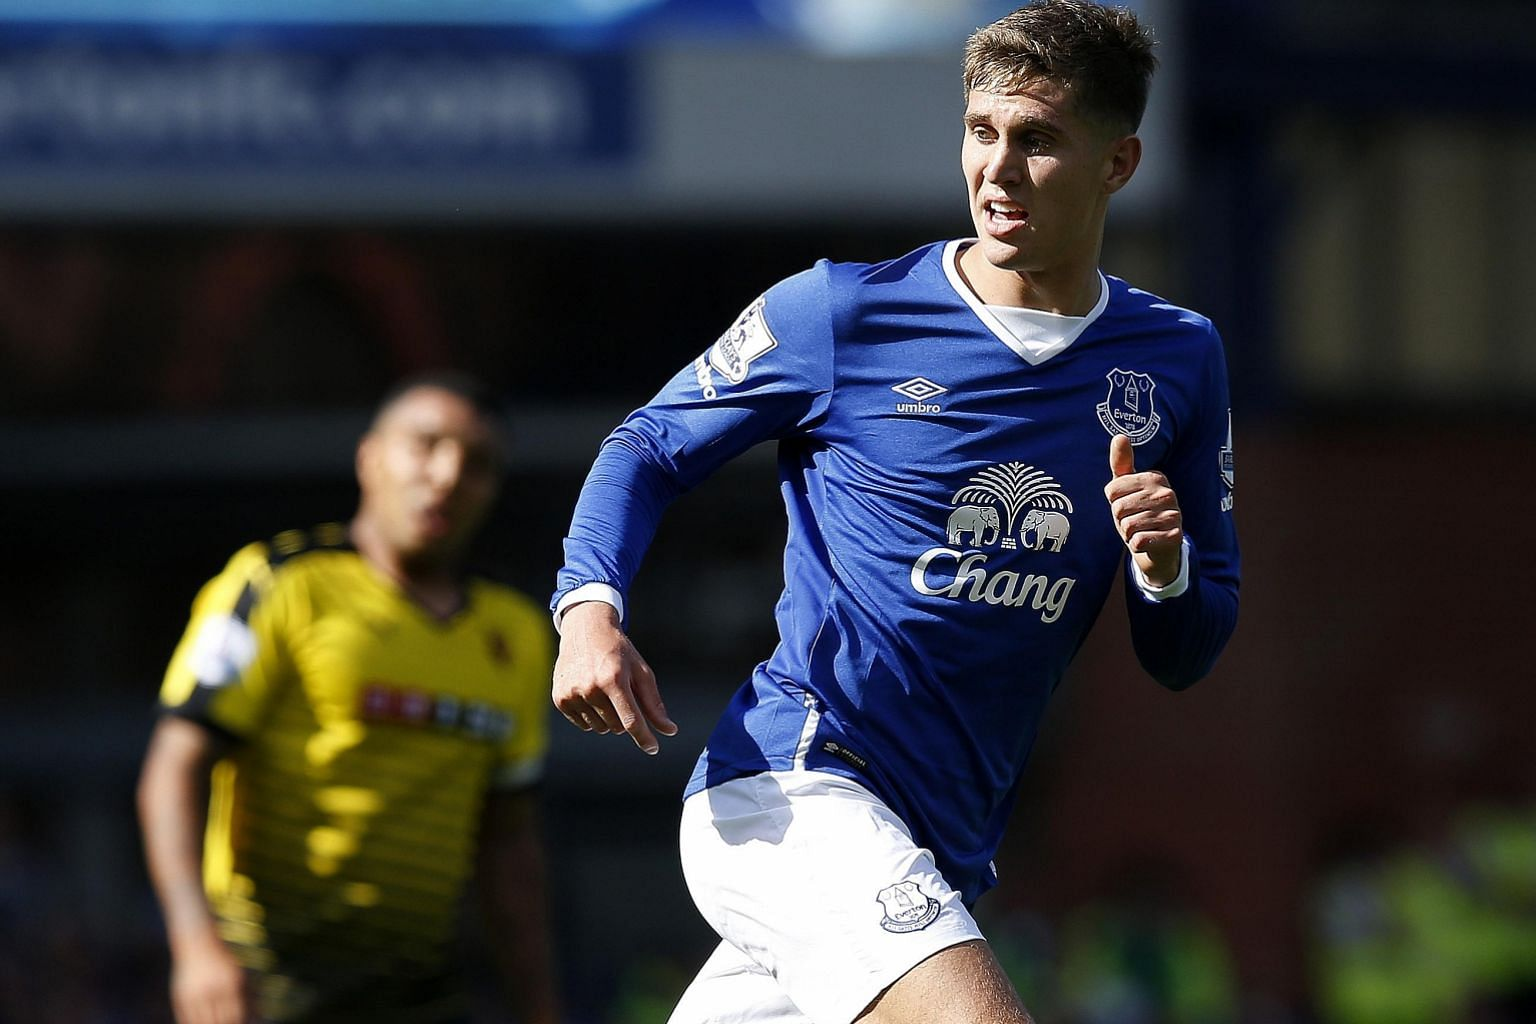 Even as Chelsea continue to lodge higher offers in a bid to acquire defender John Stones, he remains unfazed and has continued to give his all in games for Everton. Previous Toffees manager David Moyes recalls being impressed by the player's composur